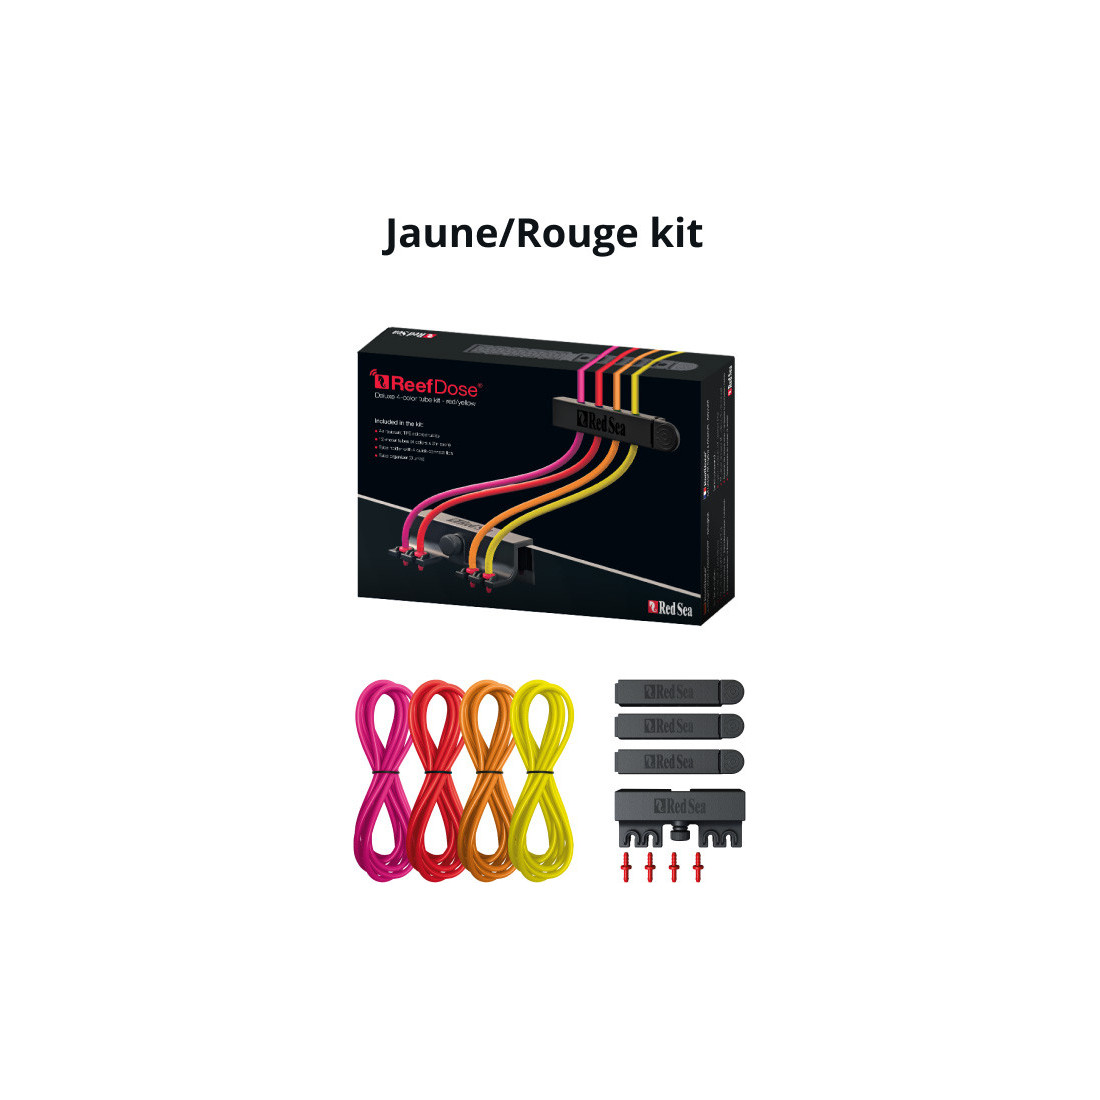 Red Sea Deluxe 4-color hose kit for Reefdose